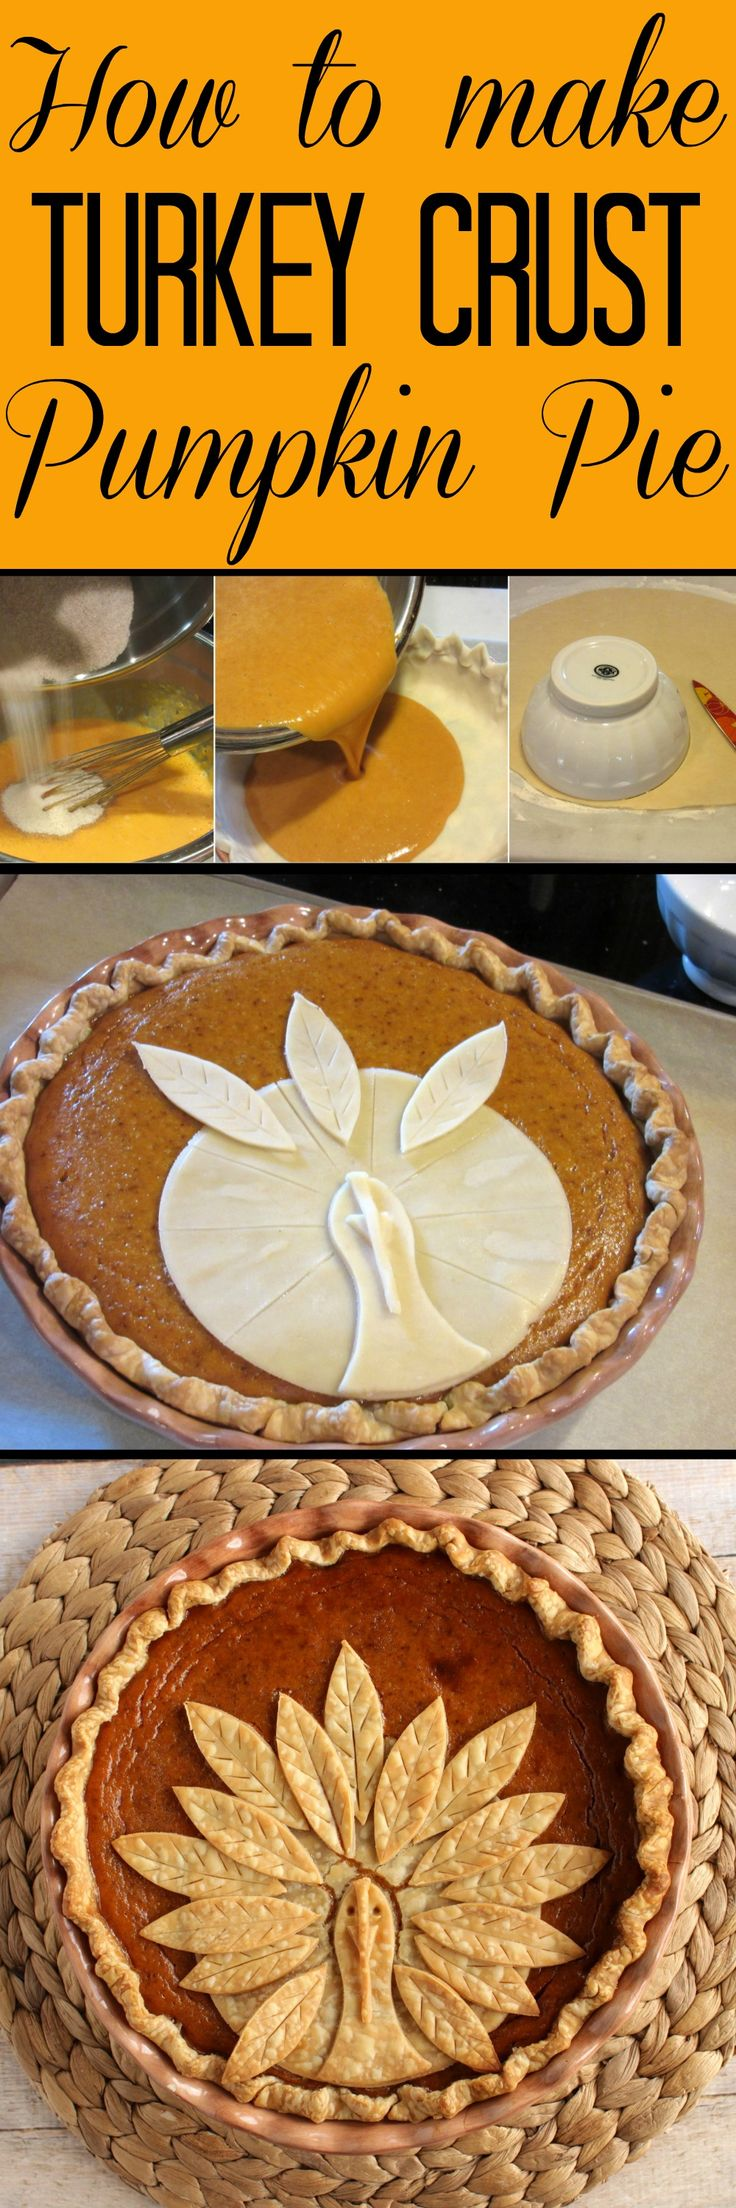 This Adorable Turkey Crust Pumpkin Pie is easy to recreate and will amaze your family and friends this holiday season.